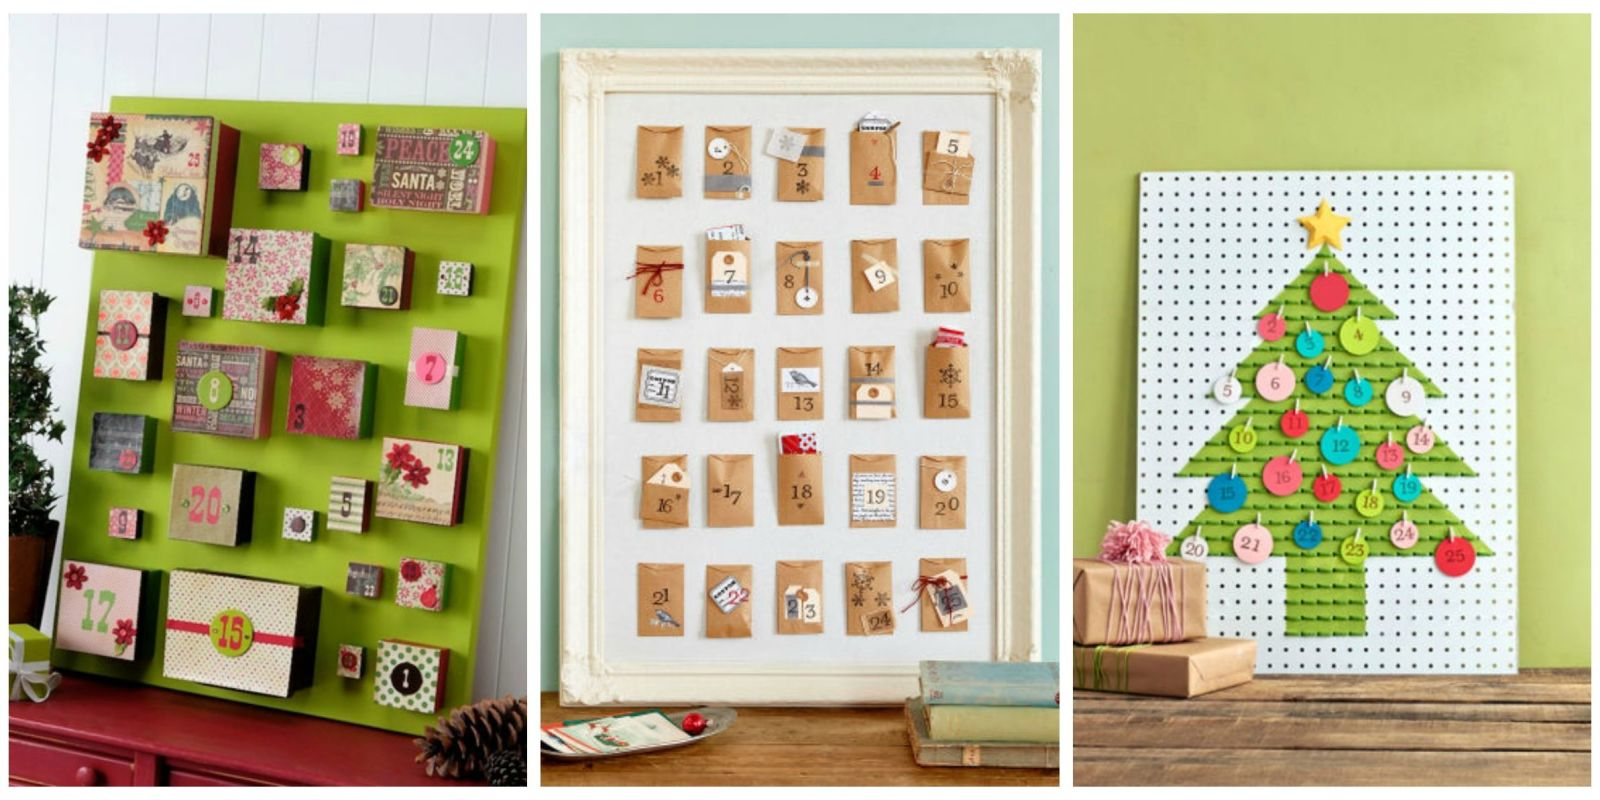 Diy Calendar Ideas : Diy advent calendar ideas homemade christmas